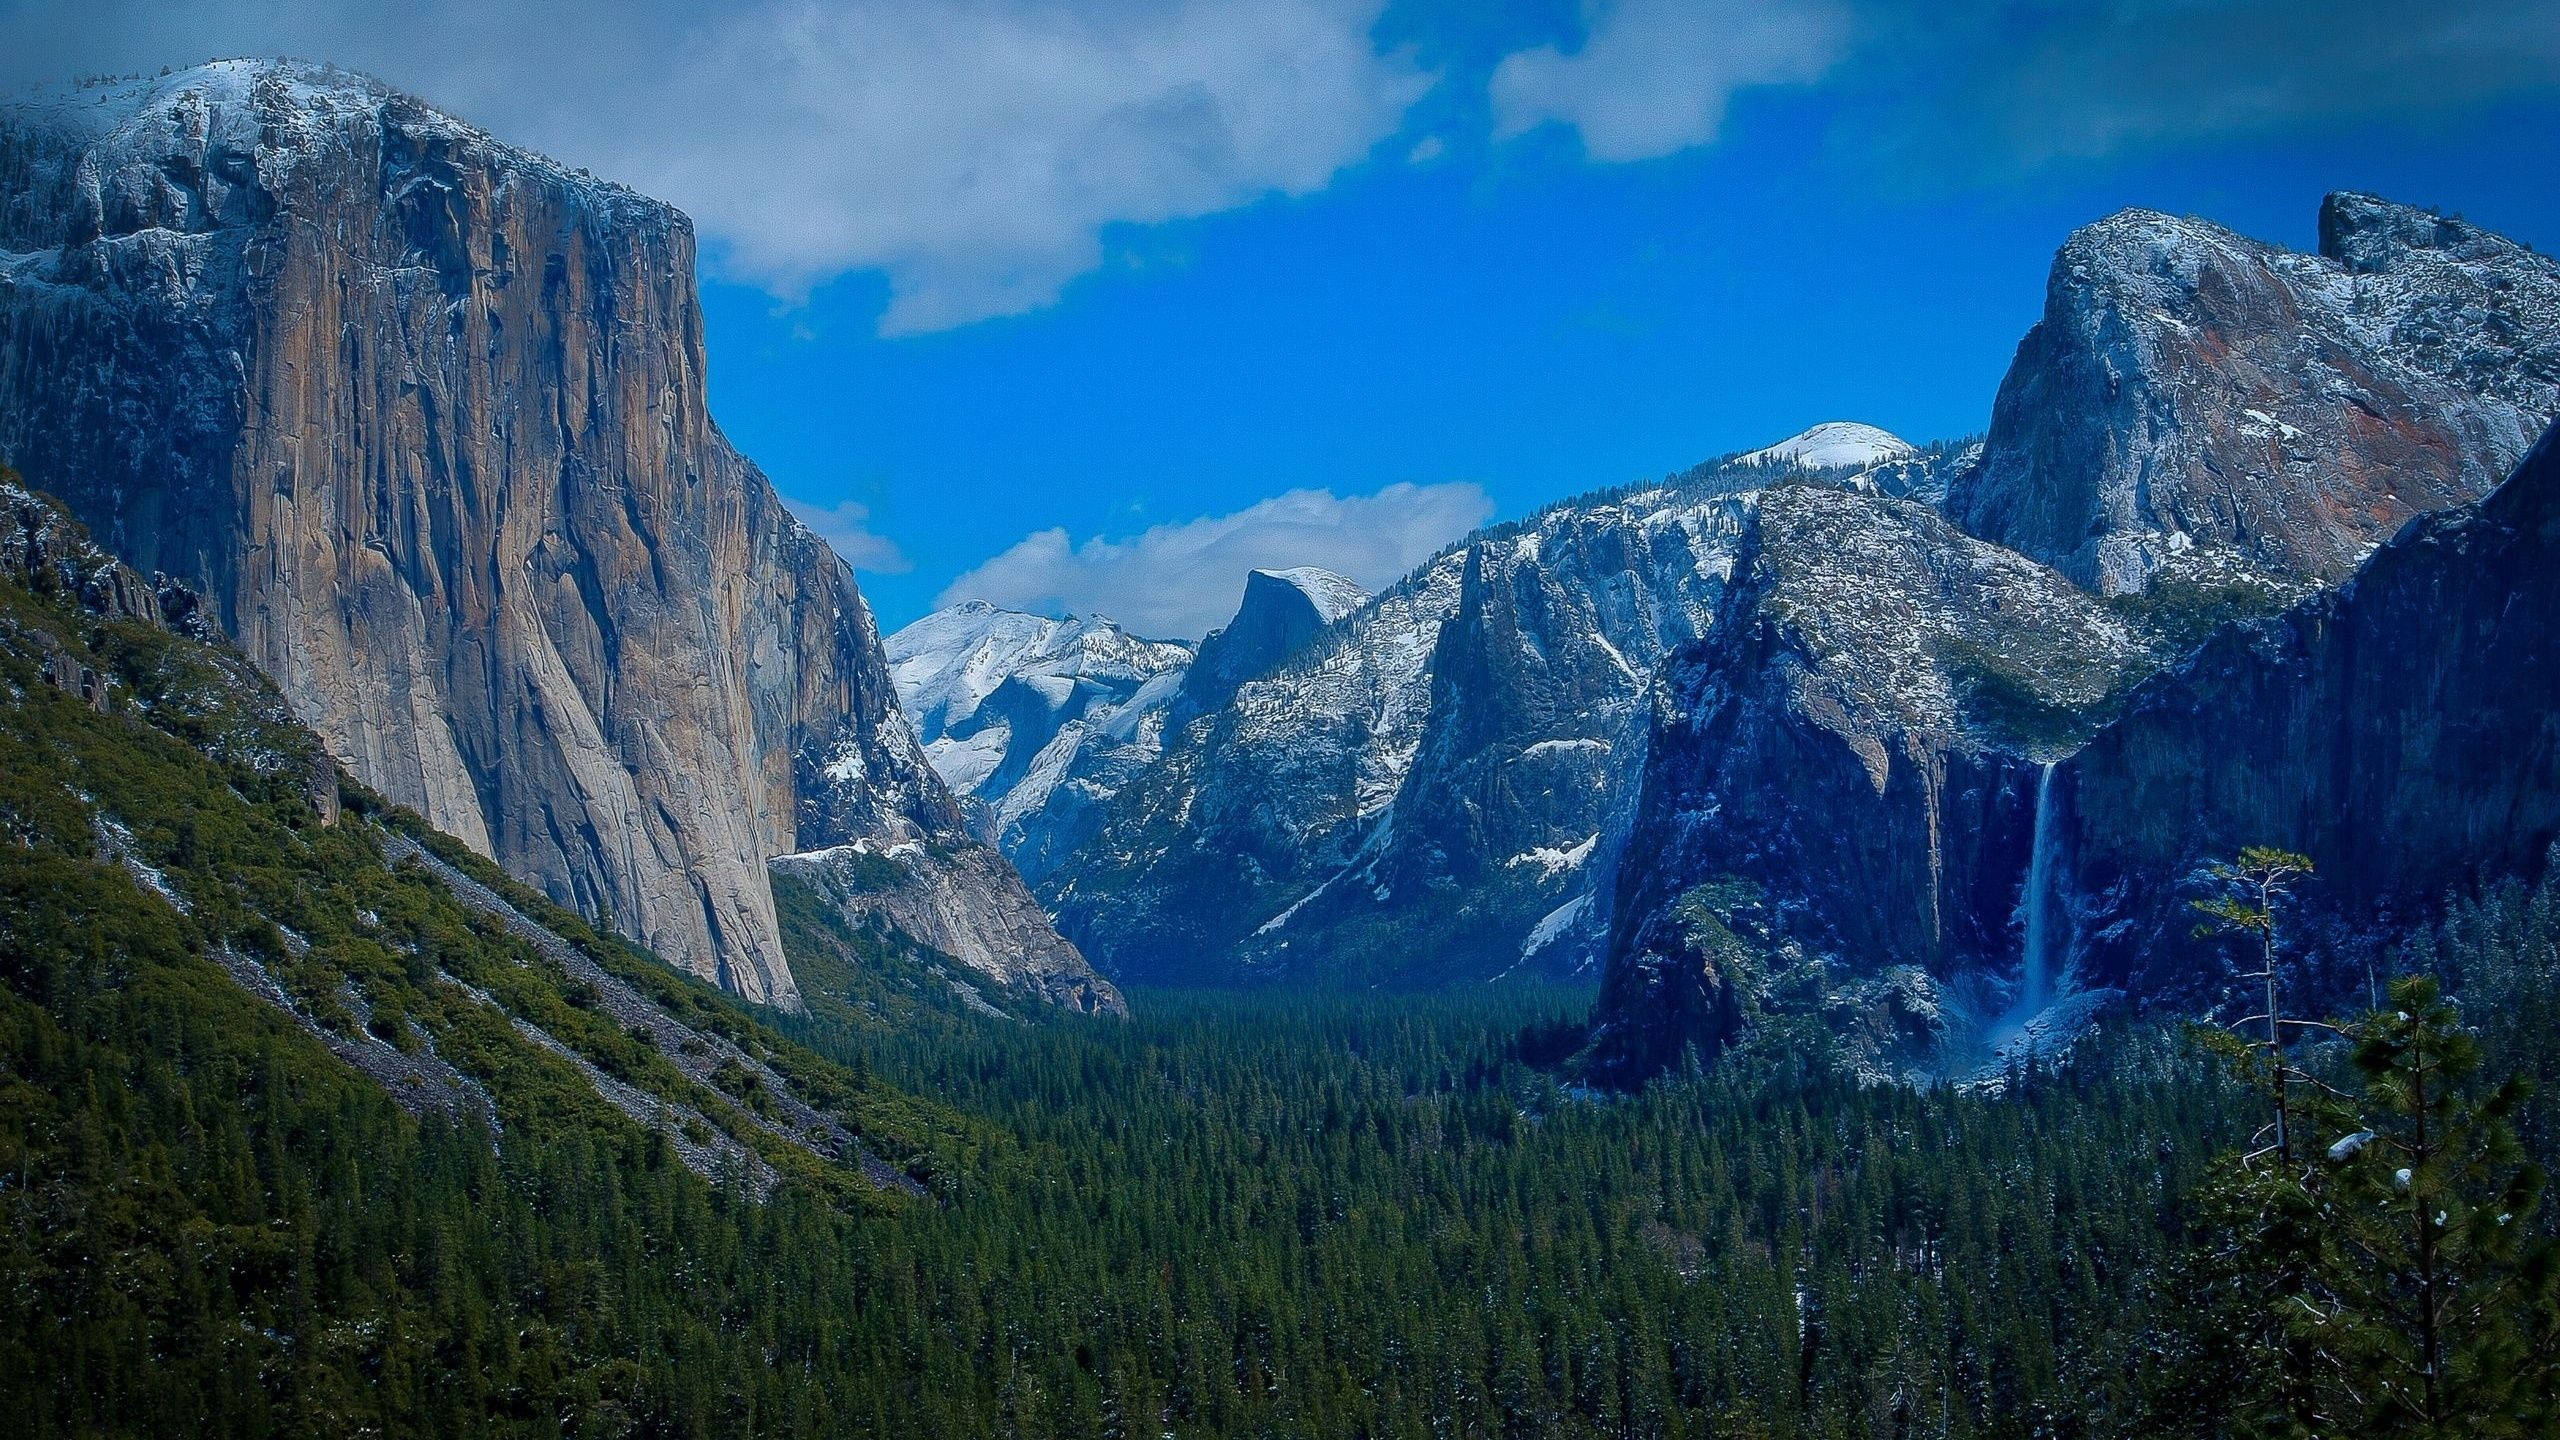 yosemite national park in california travelling moods